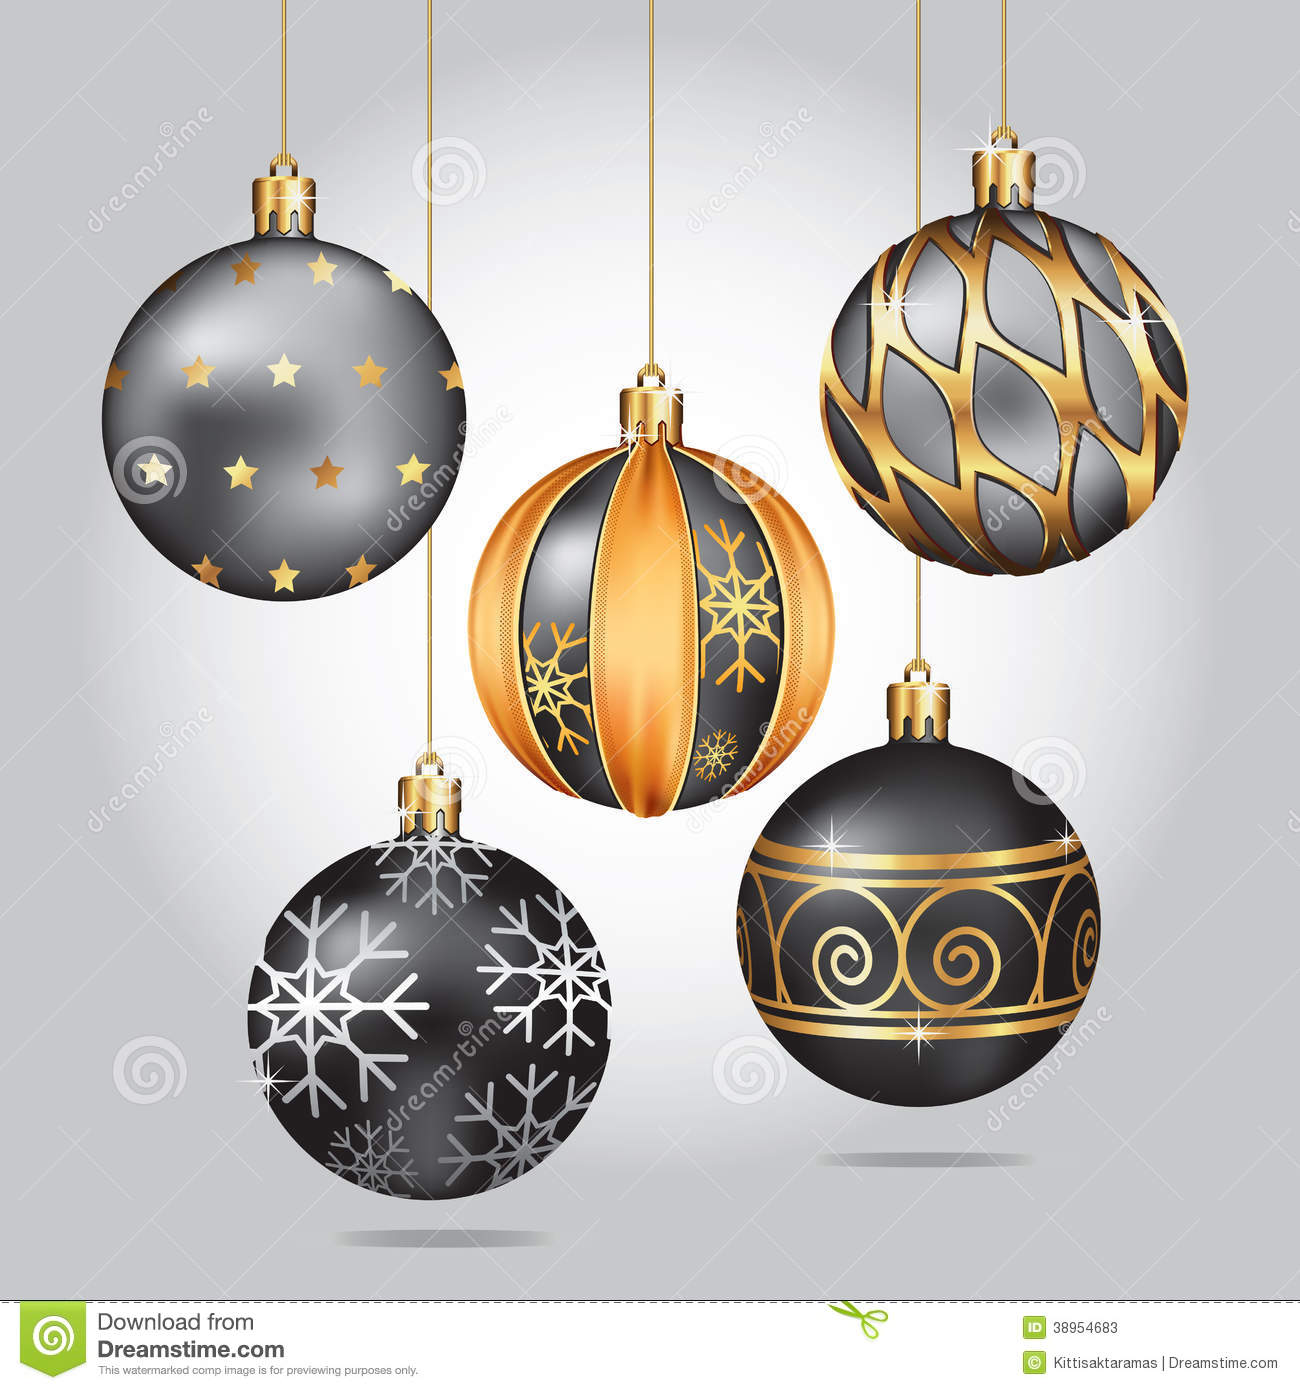 Christmas ornaments hanging on gold thread stock vector image 38954683 - Hanging christmas ornaments ...